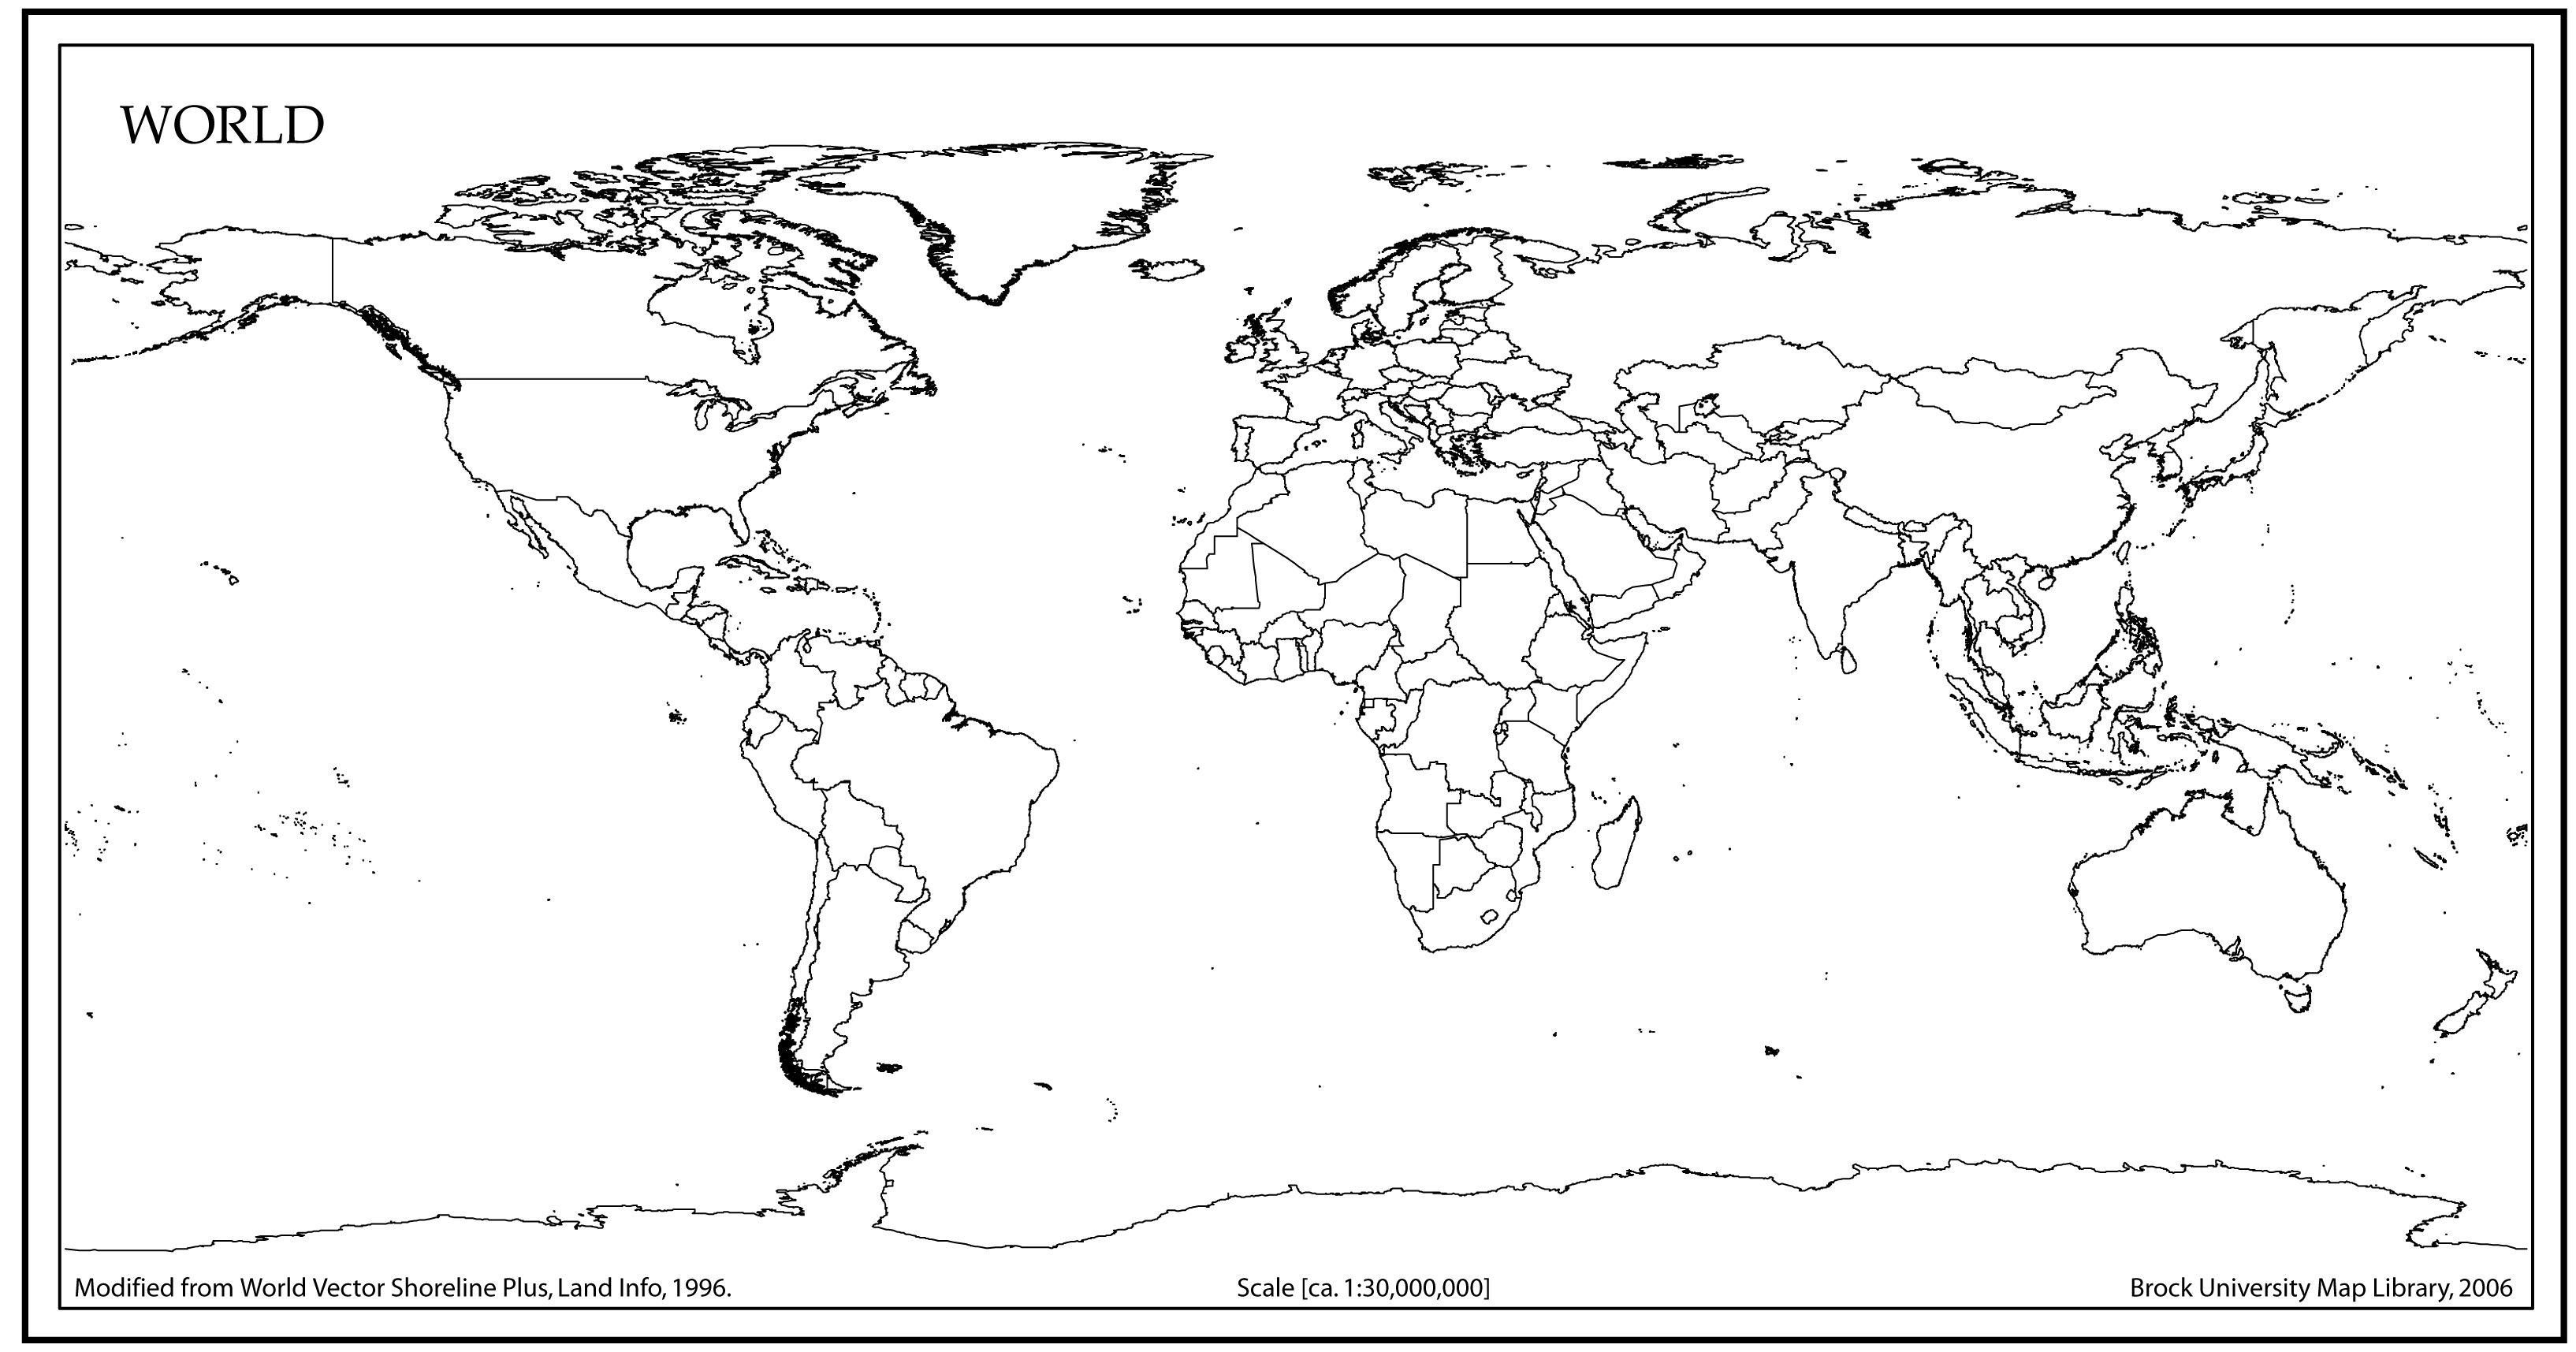 Outline Map Of World 7 Best Images of Blank World Maps Printable PDF   Printable Blank